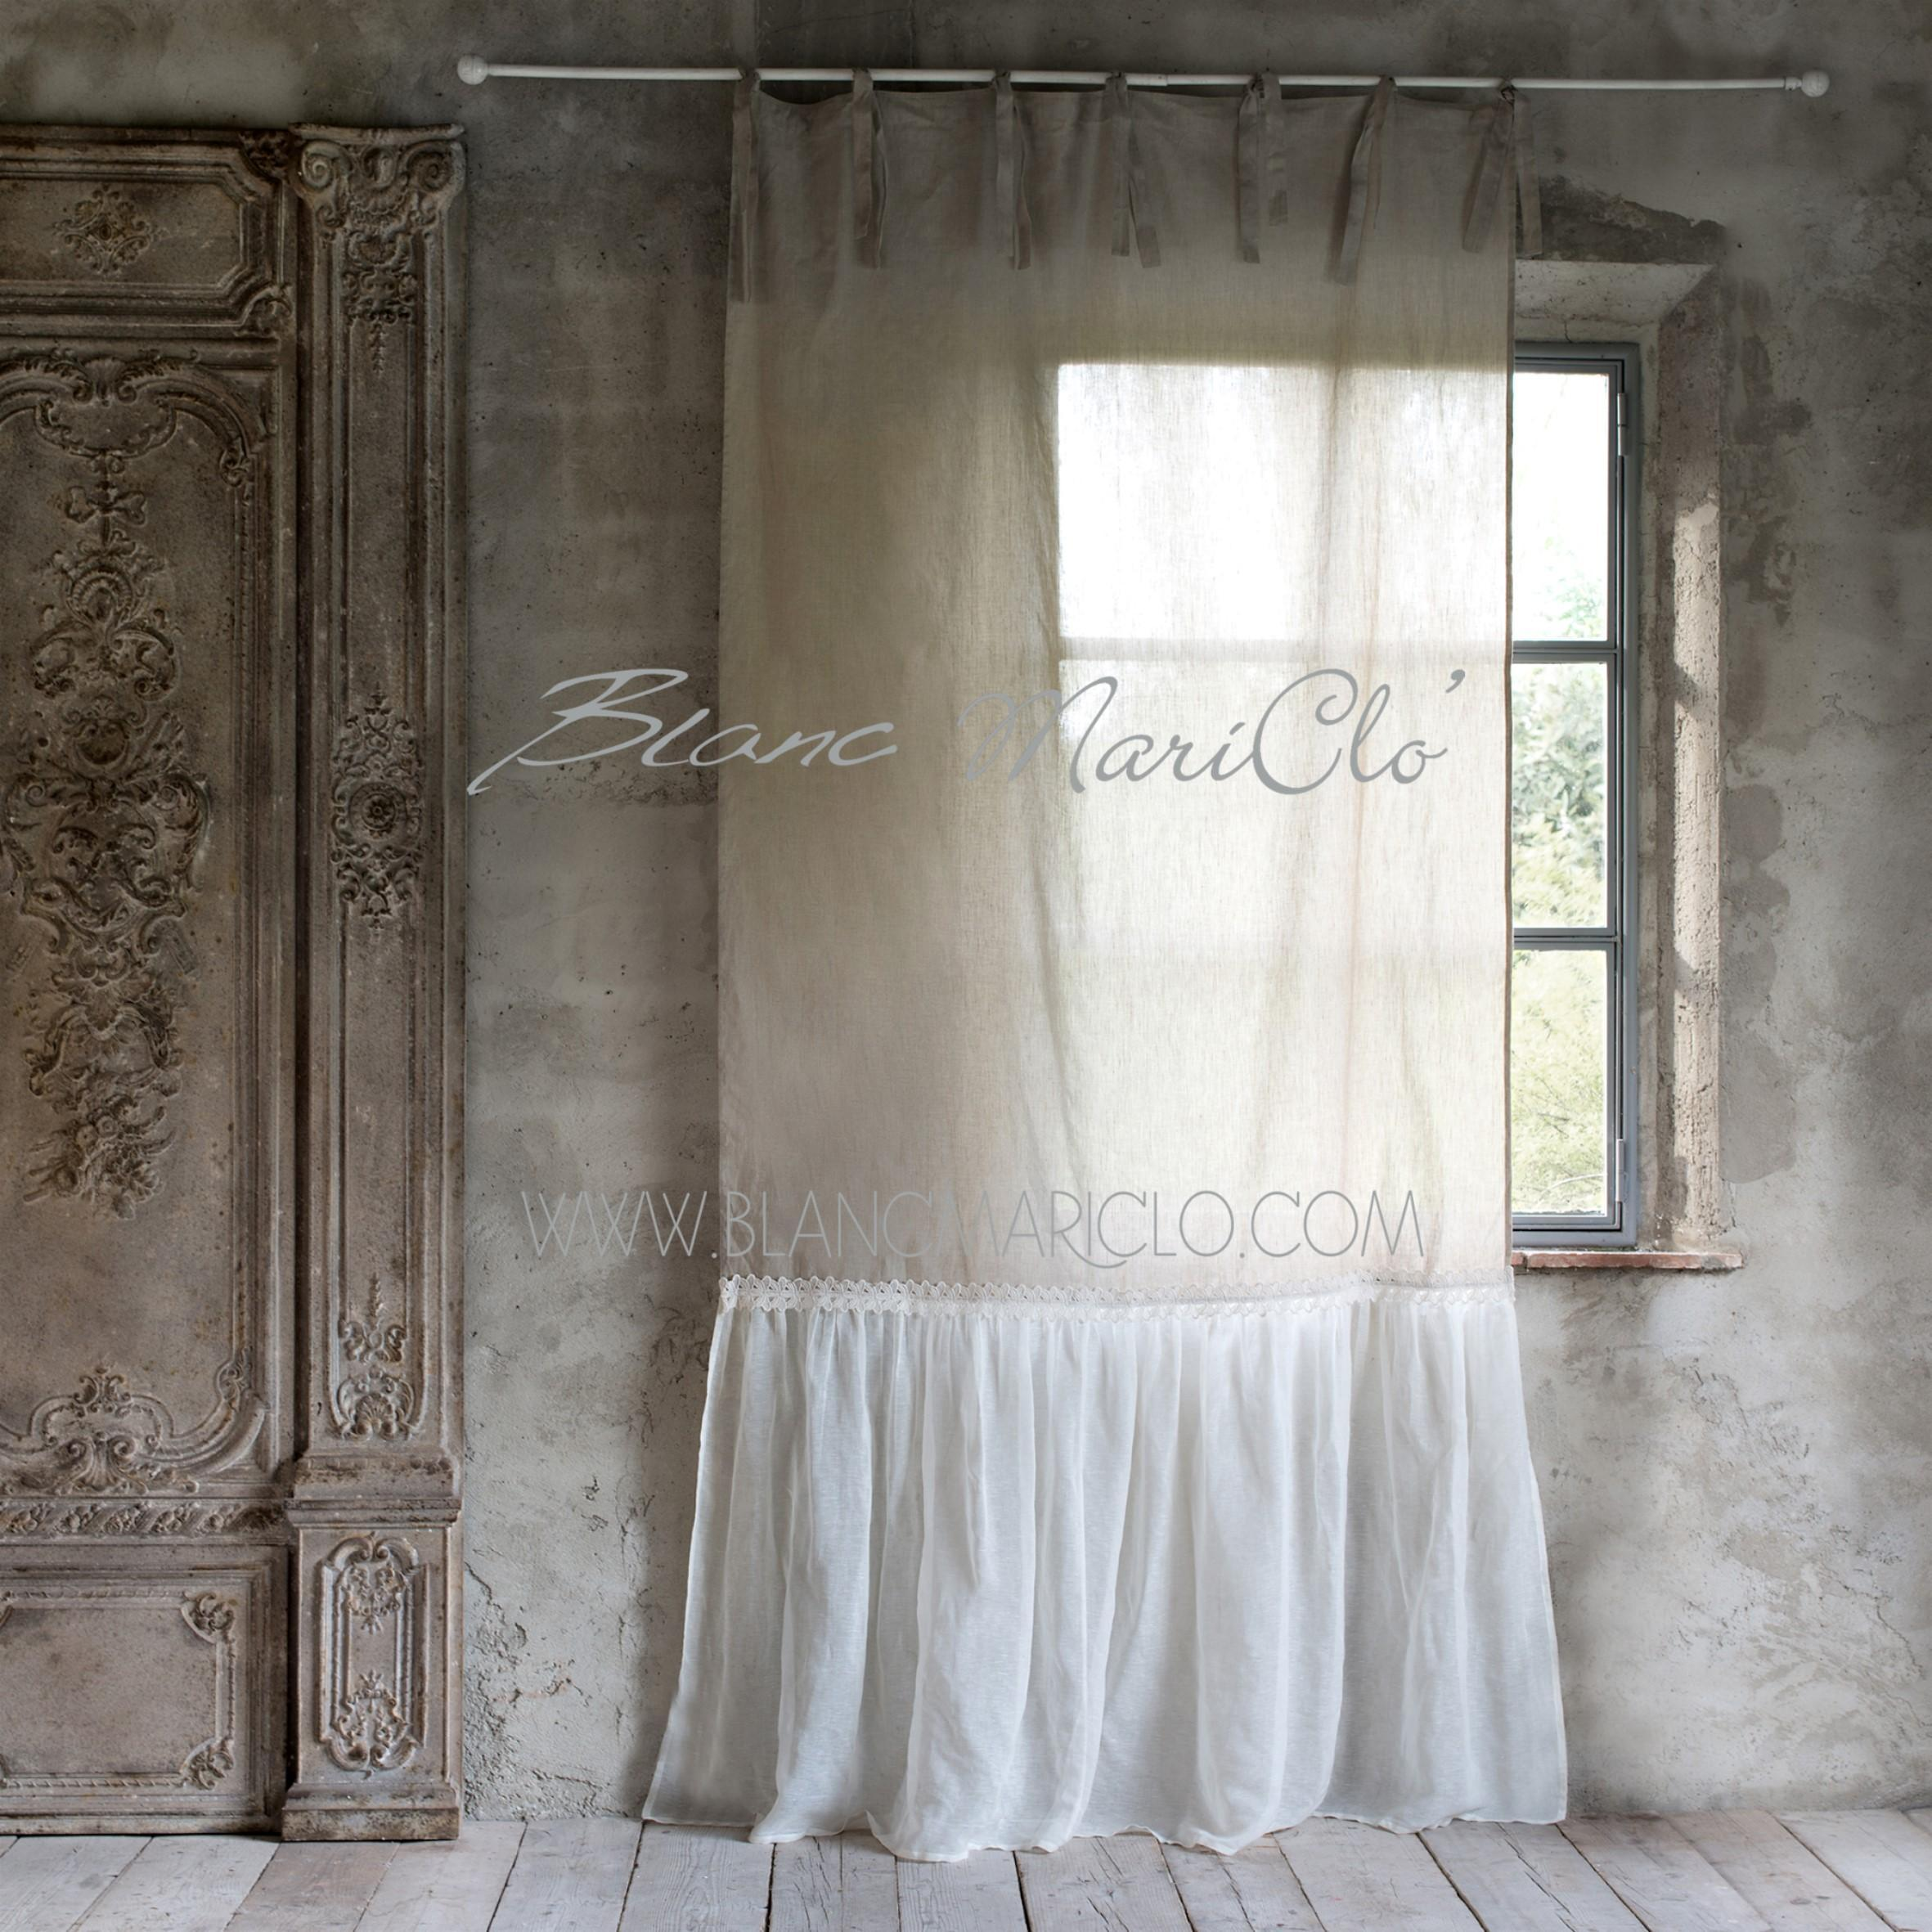 blanc mariclo follie shop online shabby chic follie. Black Bedroom Furniture Sets. Home Design Ideas